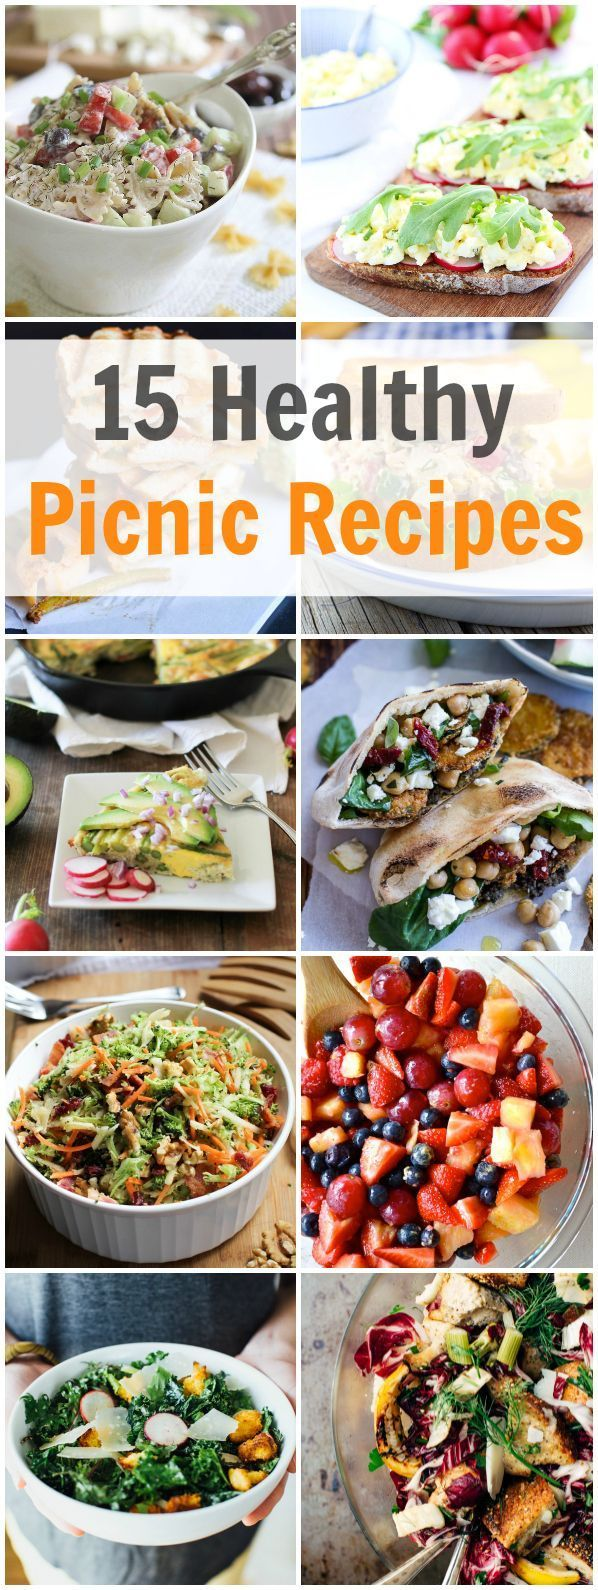 15 Healthy Picnic Recipes - Fill your picnic basket with one of these 15 Healthy Picnic Recipes and you will be ready to enjoy the spring and summer season. primaverakitchen.com